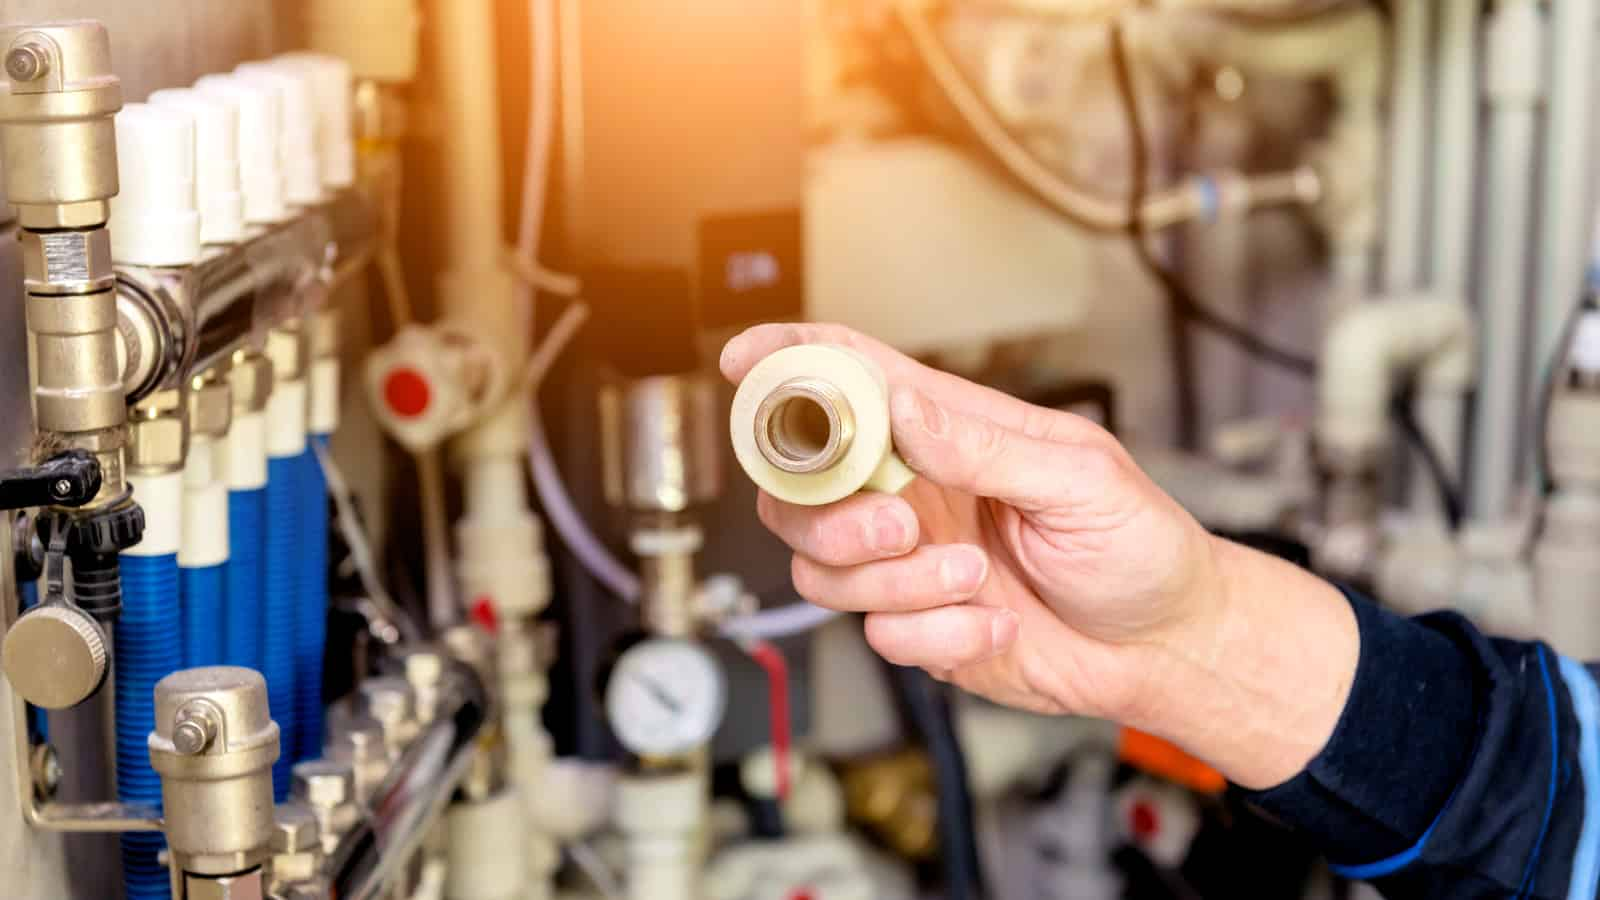 Plumbing Heating Cooling Association of Millbrae